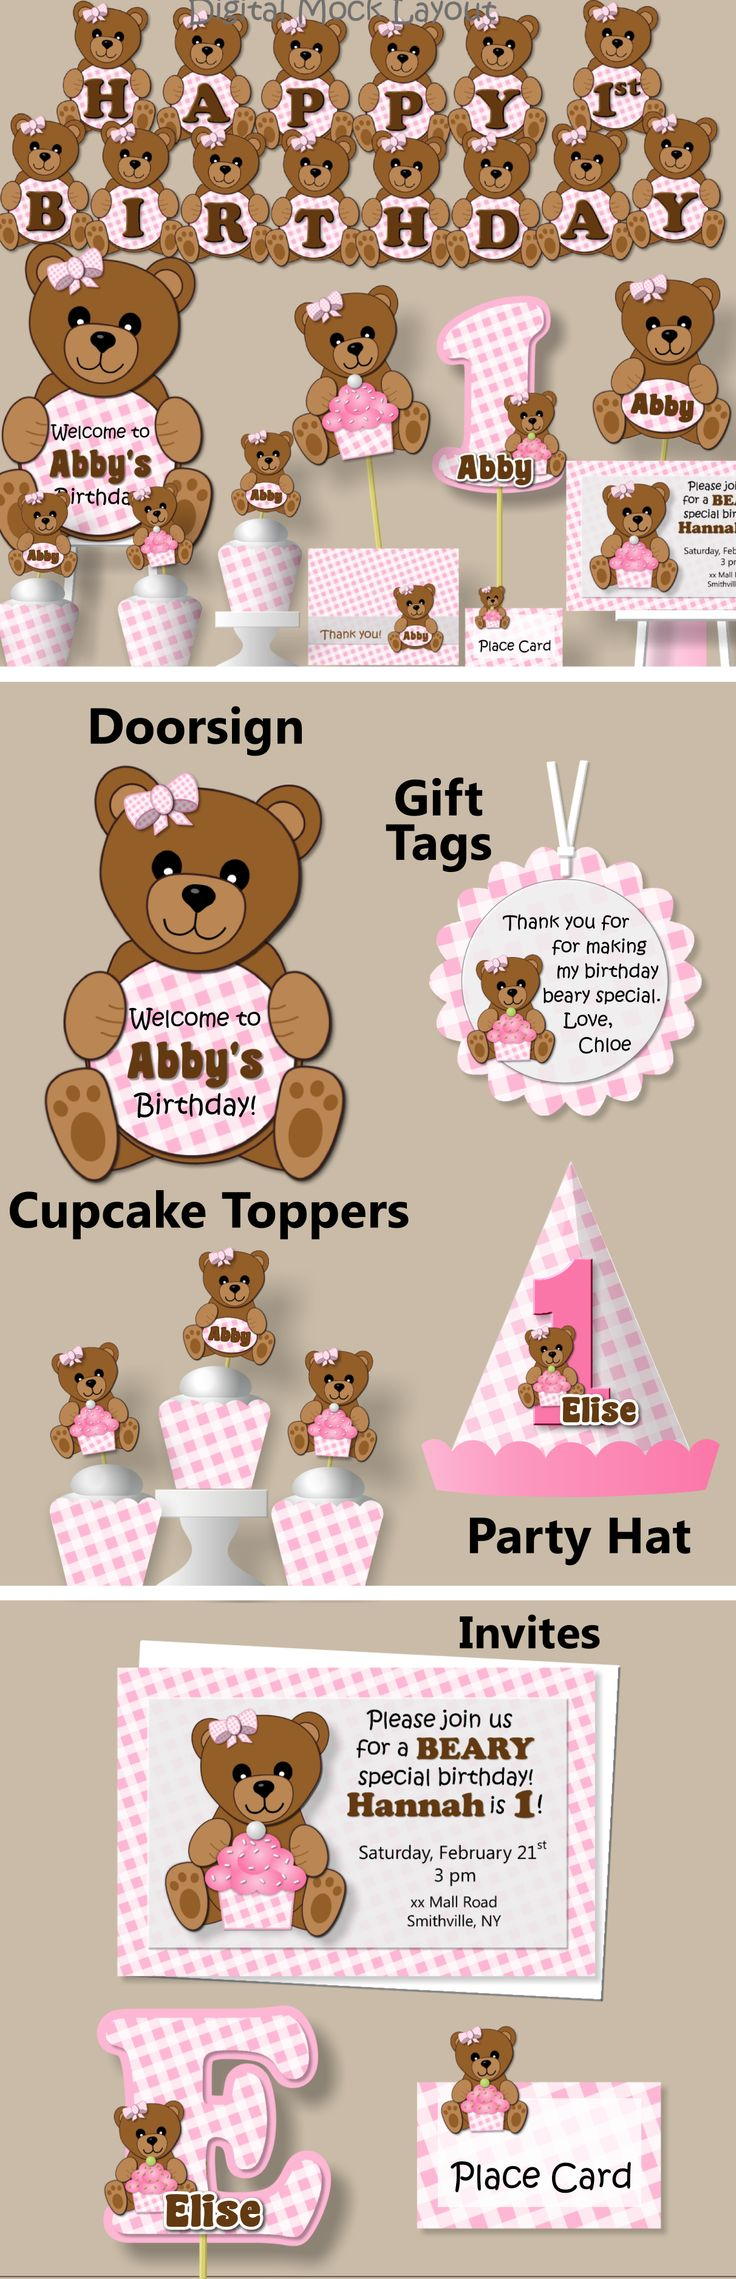 Teddy Bear Picnic Birthday Party or Baby Shower Decorations #bcpaperdesigns